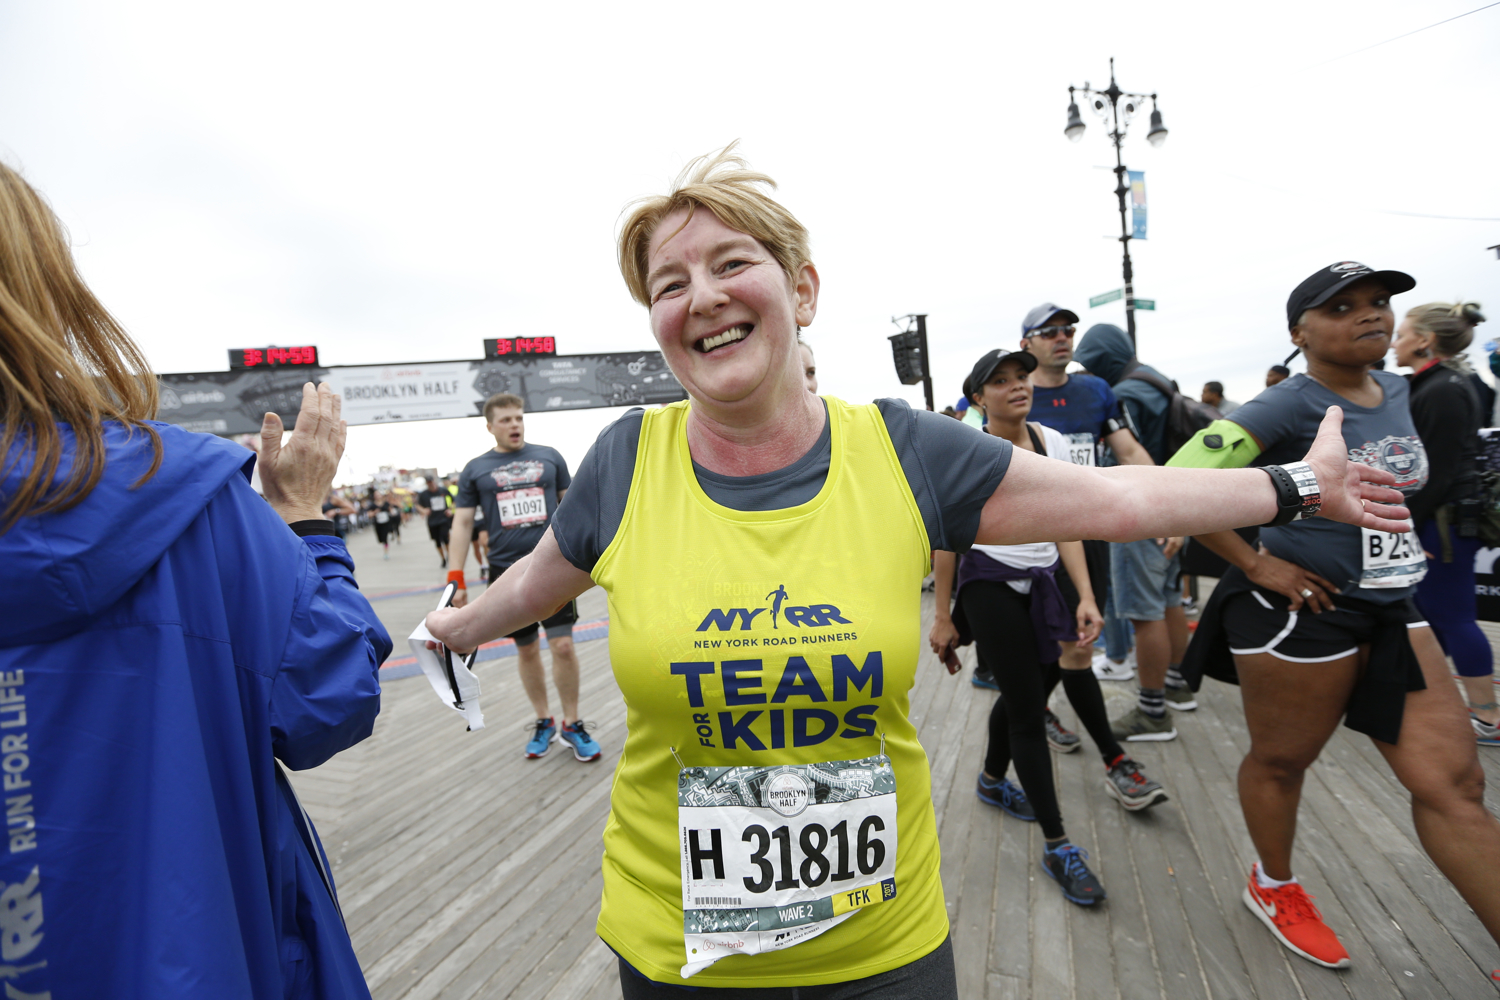 NYRR Team for Kids: Inspire Kids and Run the Brooklyn Half